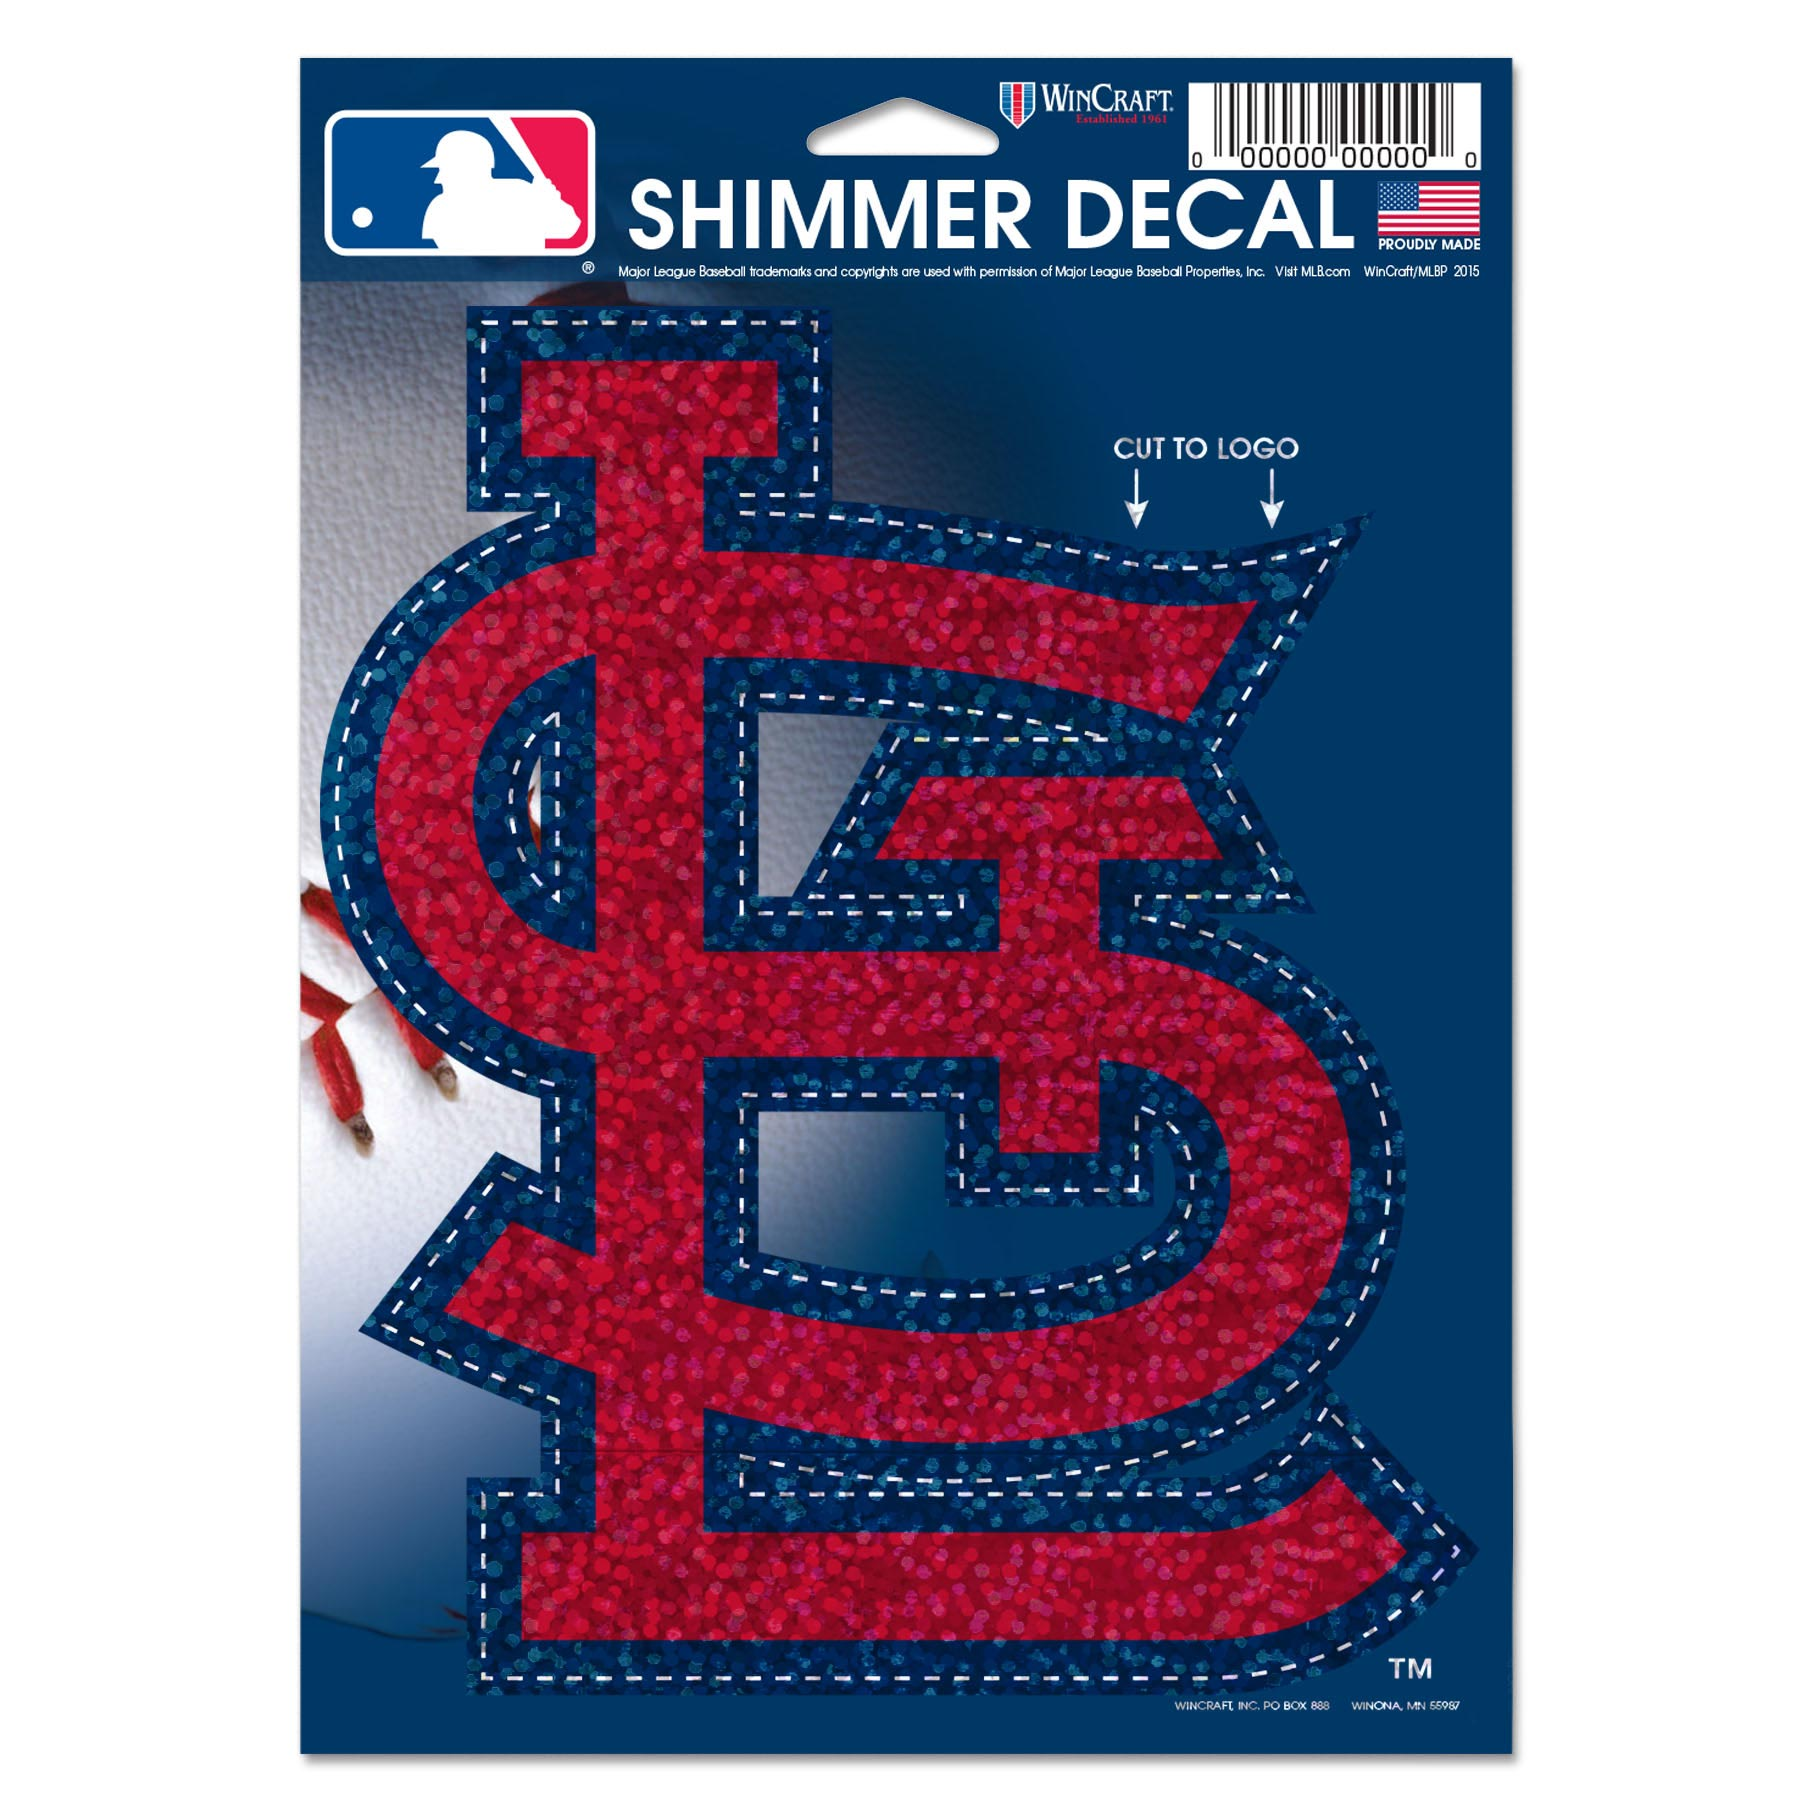 """St. Louis Cardinals WinCraft 5"""" x 7"""" Shimmer Decal - No Size"""